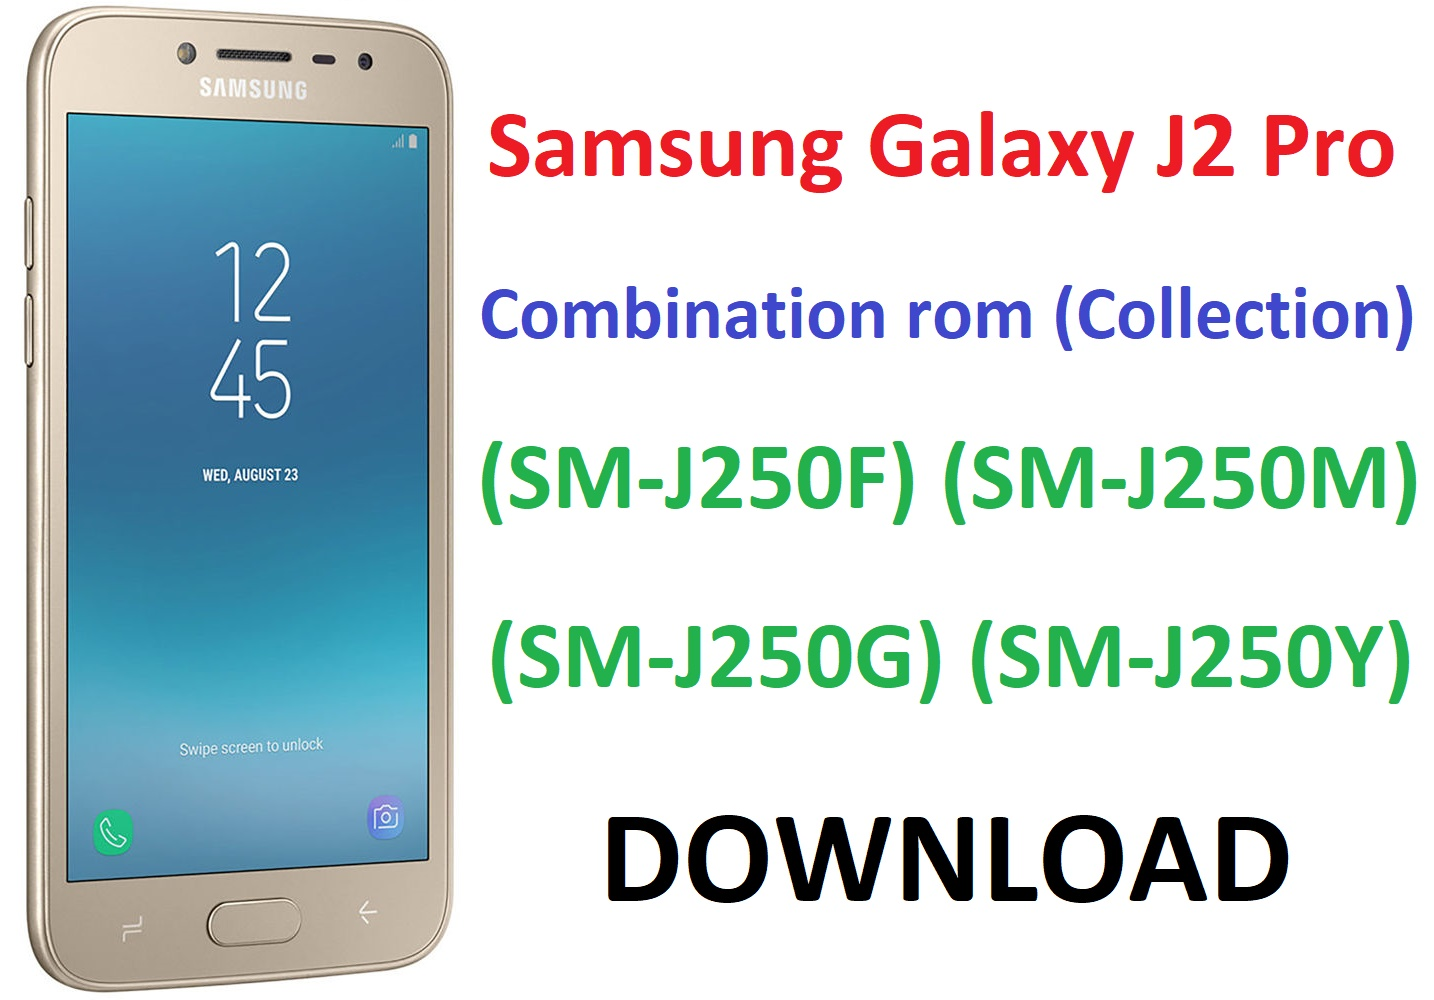 DOWNLOAD Samsung Galaxy J2 Pro Combination rom (Collection